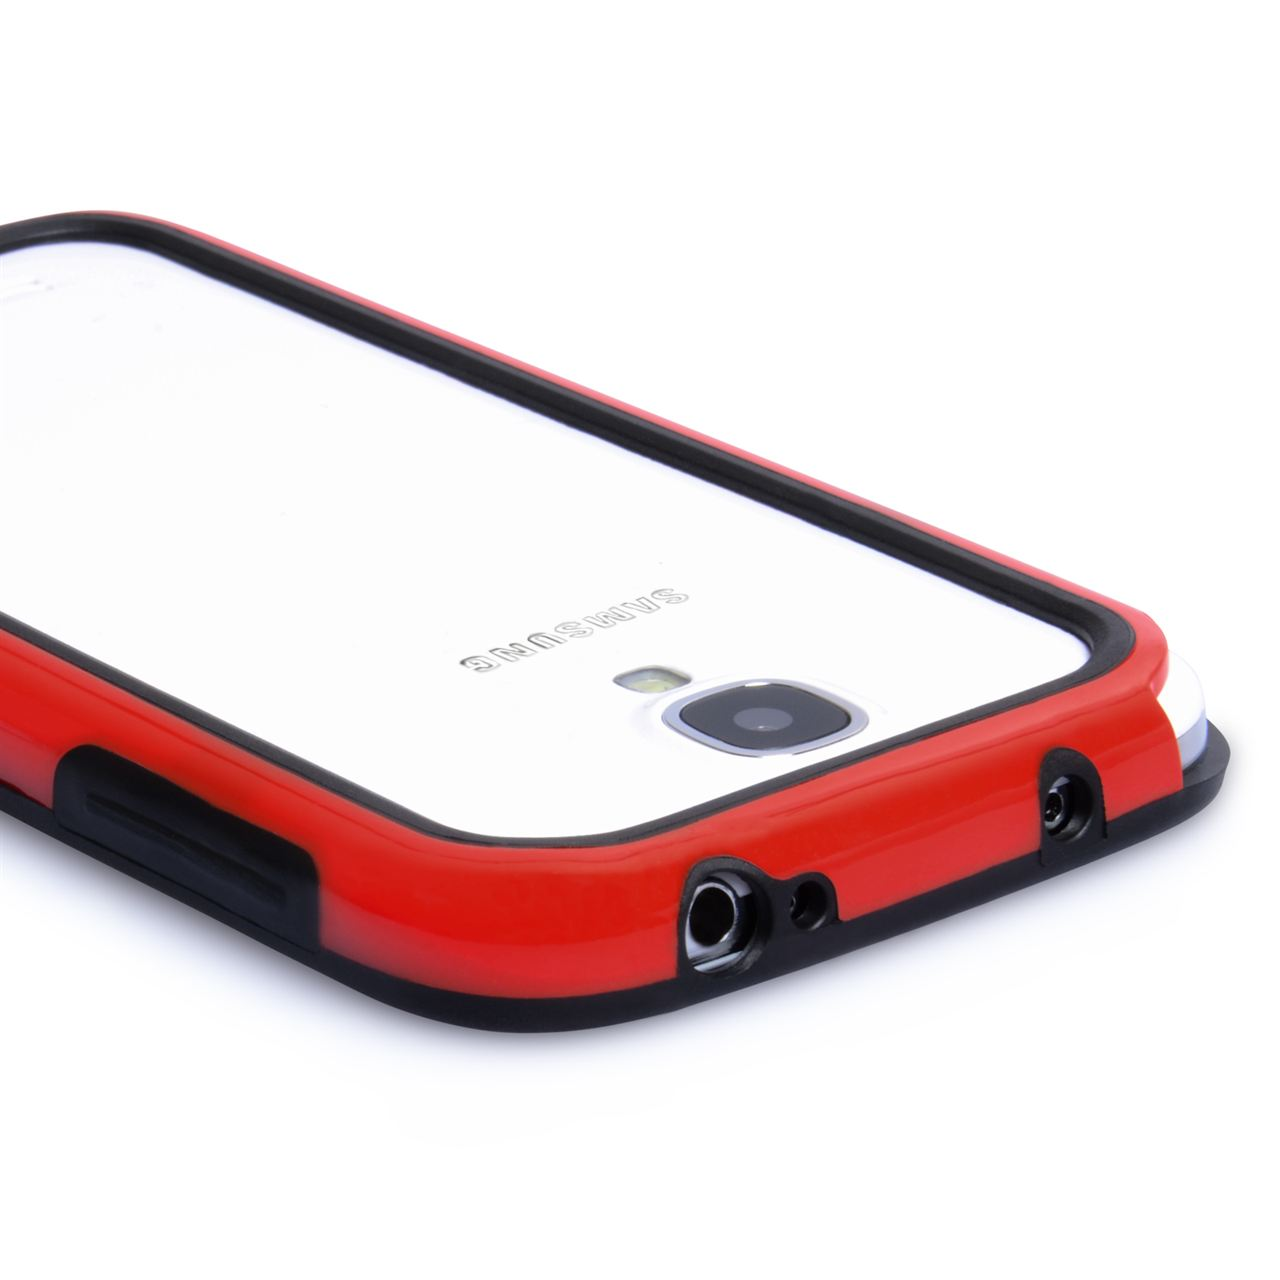 YouSave Accessories Samsung Galaxy S4 Bumper Case - Red